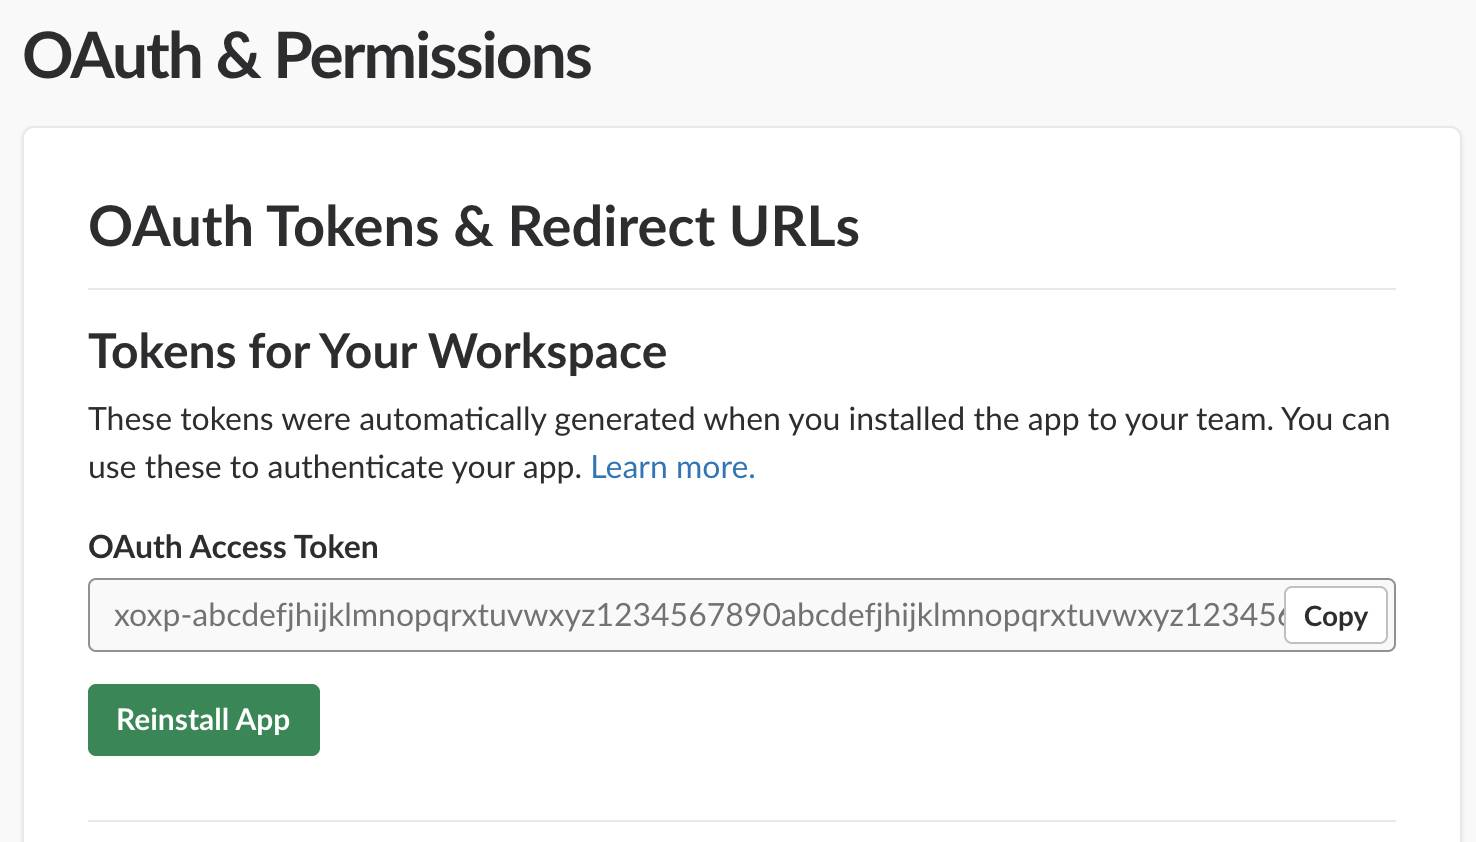 The Tokens for Your Workspace section enables you to copy the OAuth Access Token with a click.